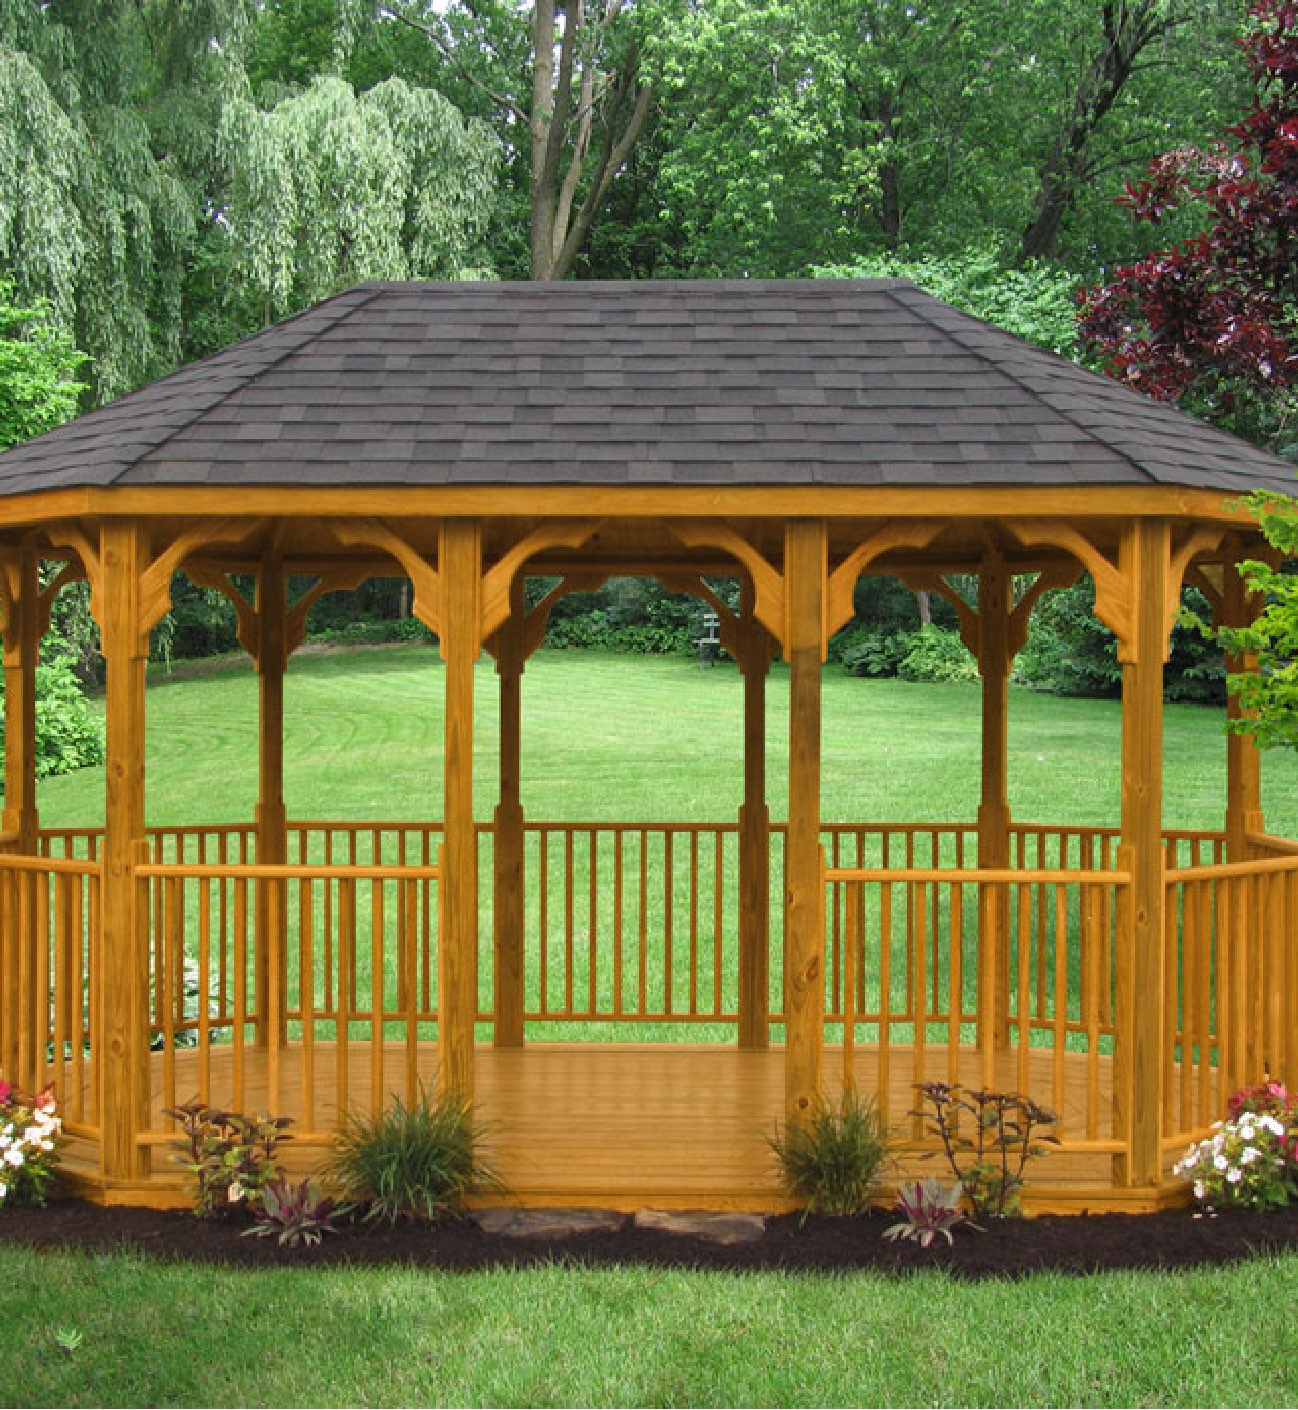 10' x 16' Value Wood Gazebo